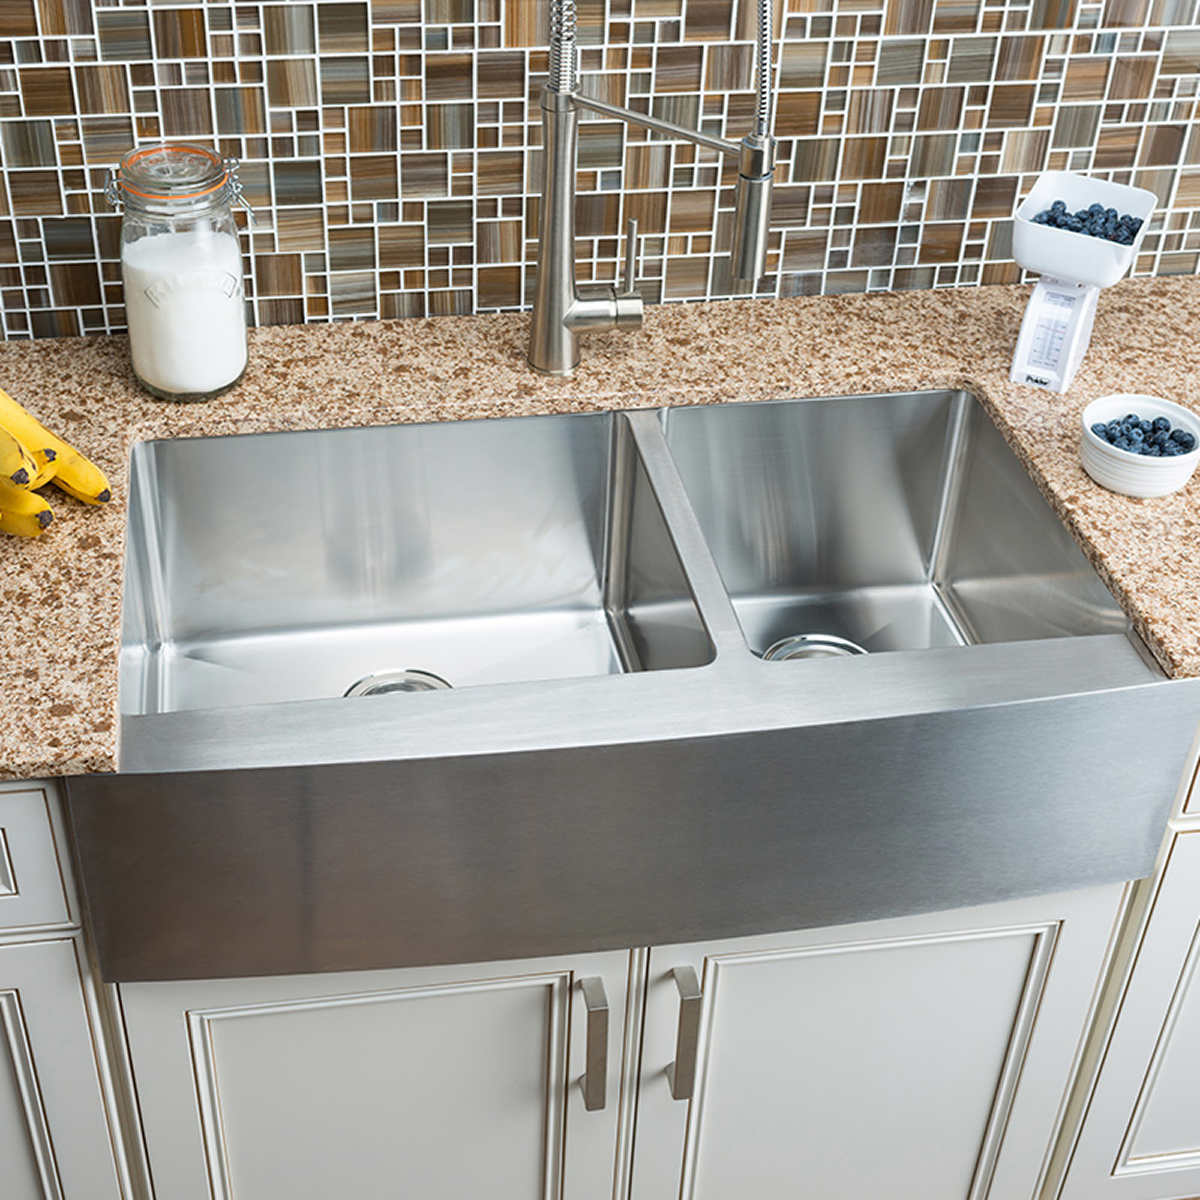 Groovy Hahn Chef Series Handmade Extra Large 60 40 Farmhouse Sink Beutiful Home Inspiration Xortanetmahrainfo